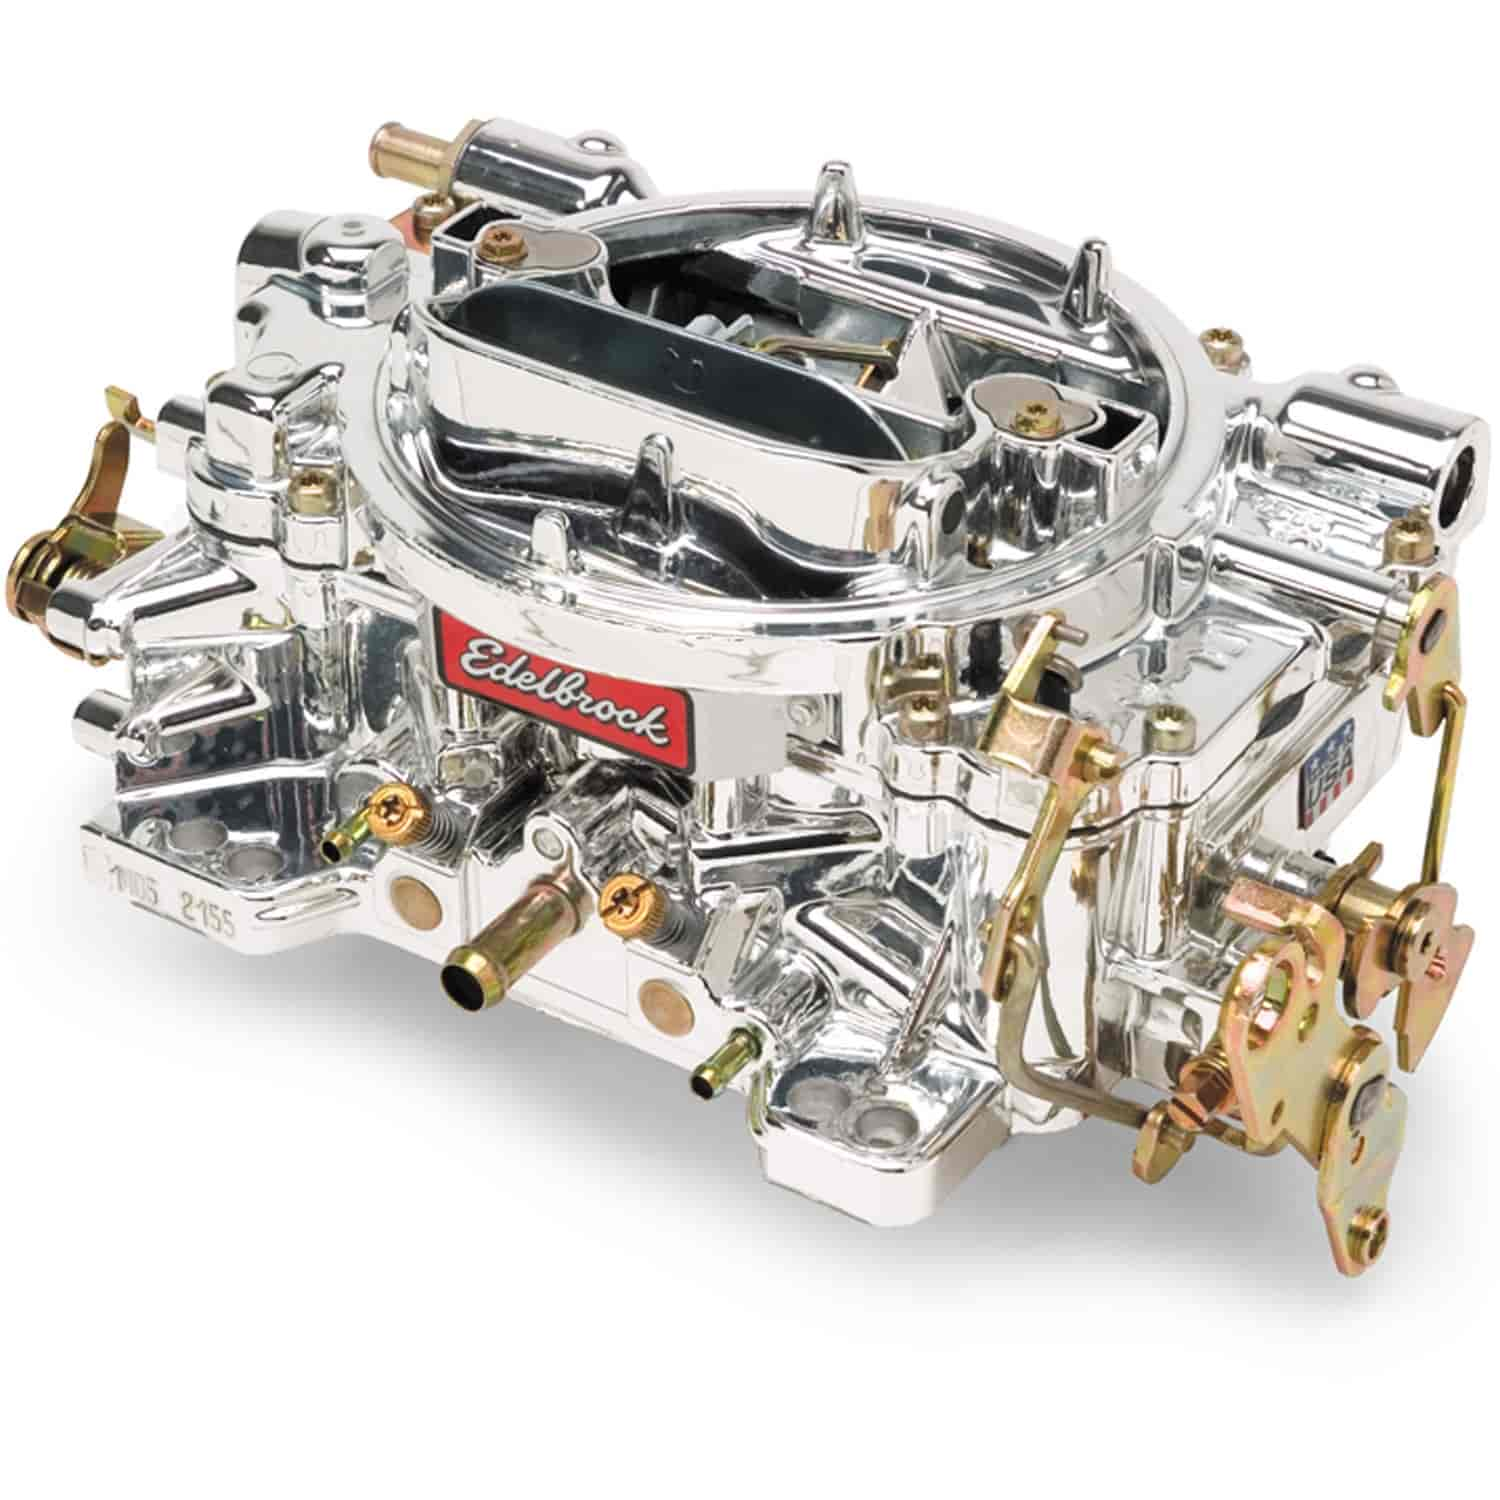 Edelbrock 14054 - Edelbrock Performer Carburetors